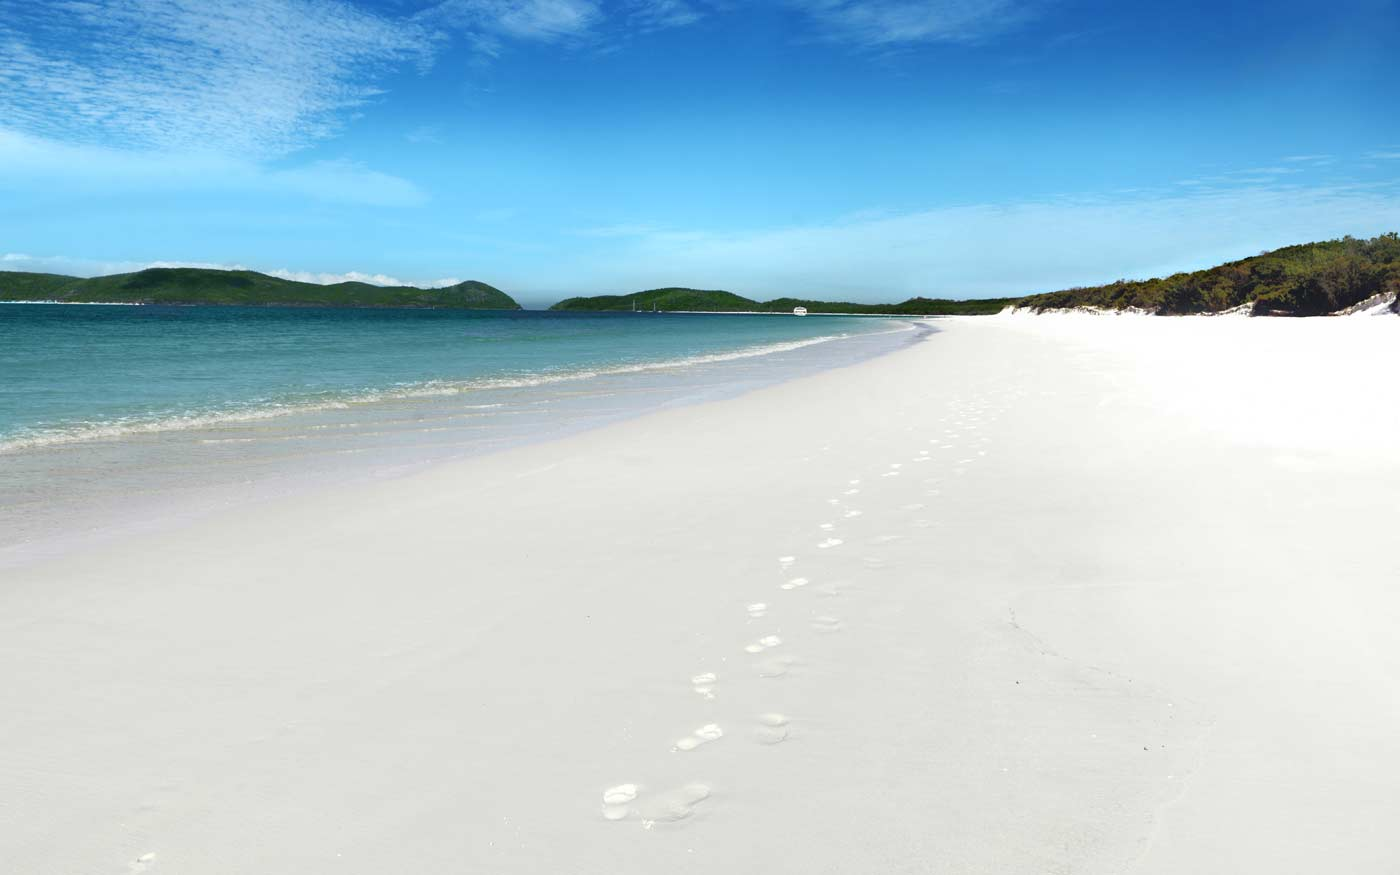 Whitehaven Beach with its 98% pure silica white sand